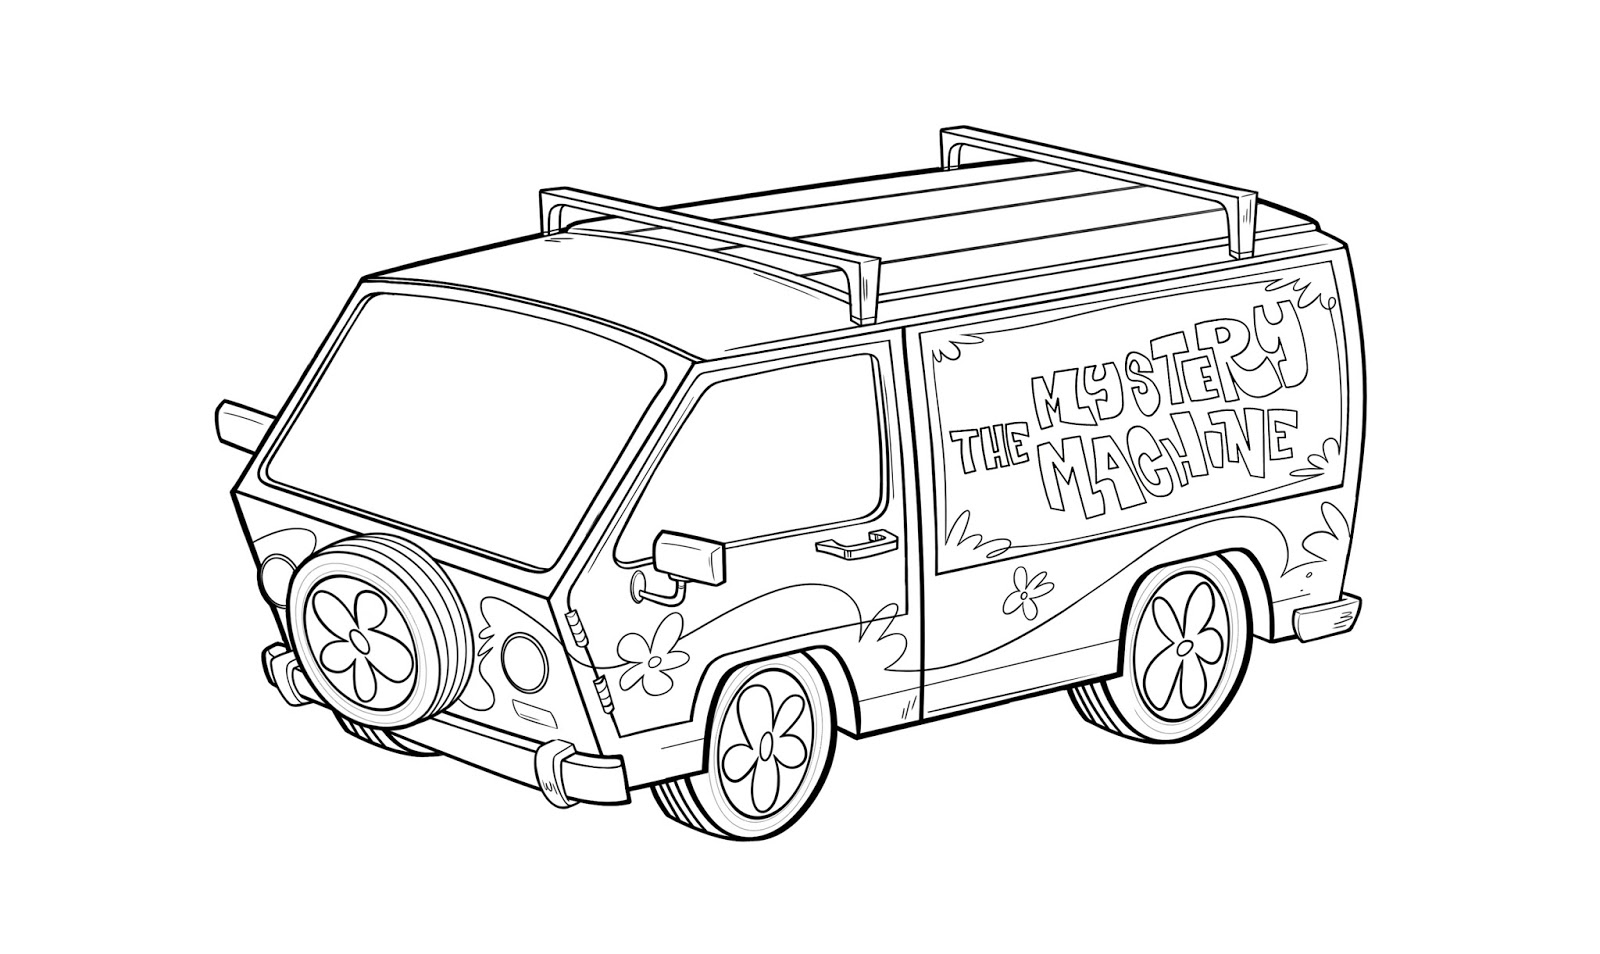 Early development ideas for The Mystery Machine for Be